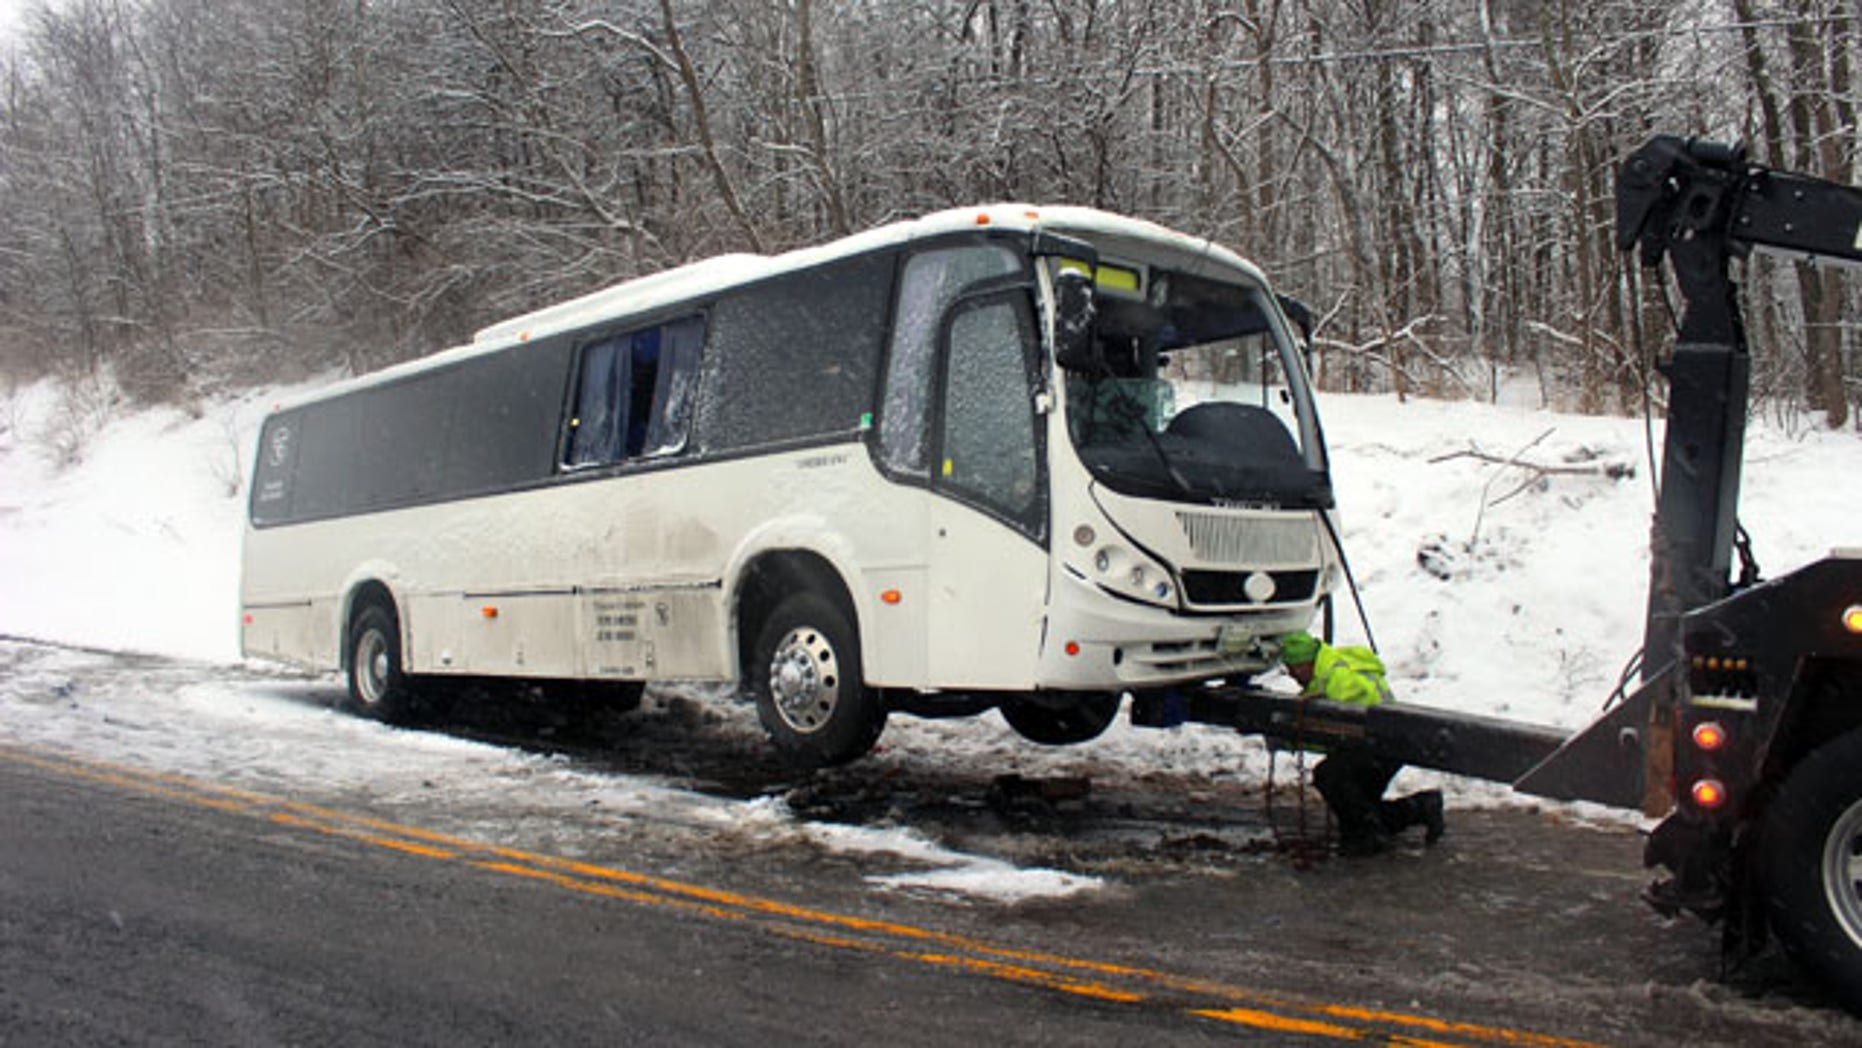 February 9, 2014: An Interstate Emergency Services employee hooks up a bus to a tow truck to pull it out of the ditch on Route 220 in Cumberland Valley Twp., Pa. (AP Photo/Bedford Gazette, Bridgett Weaver)